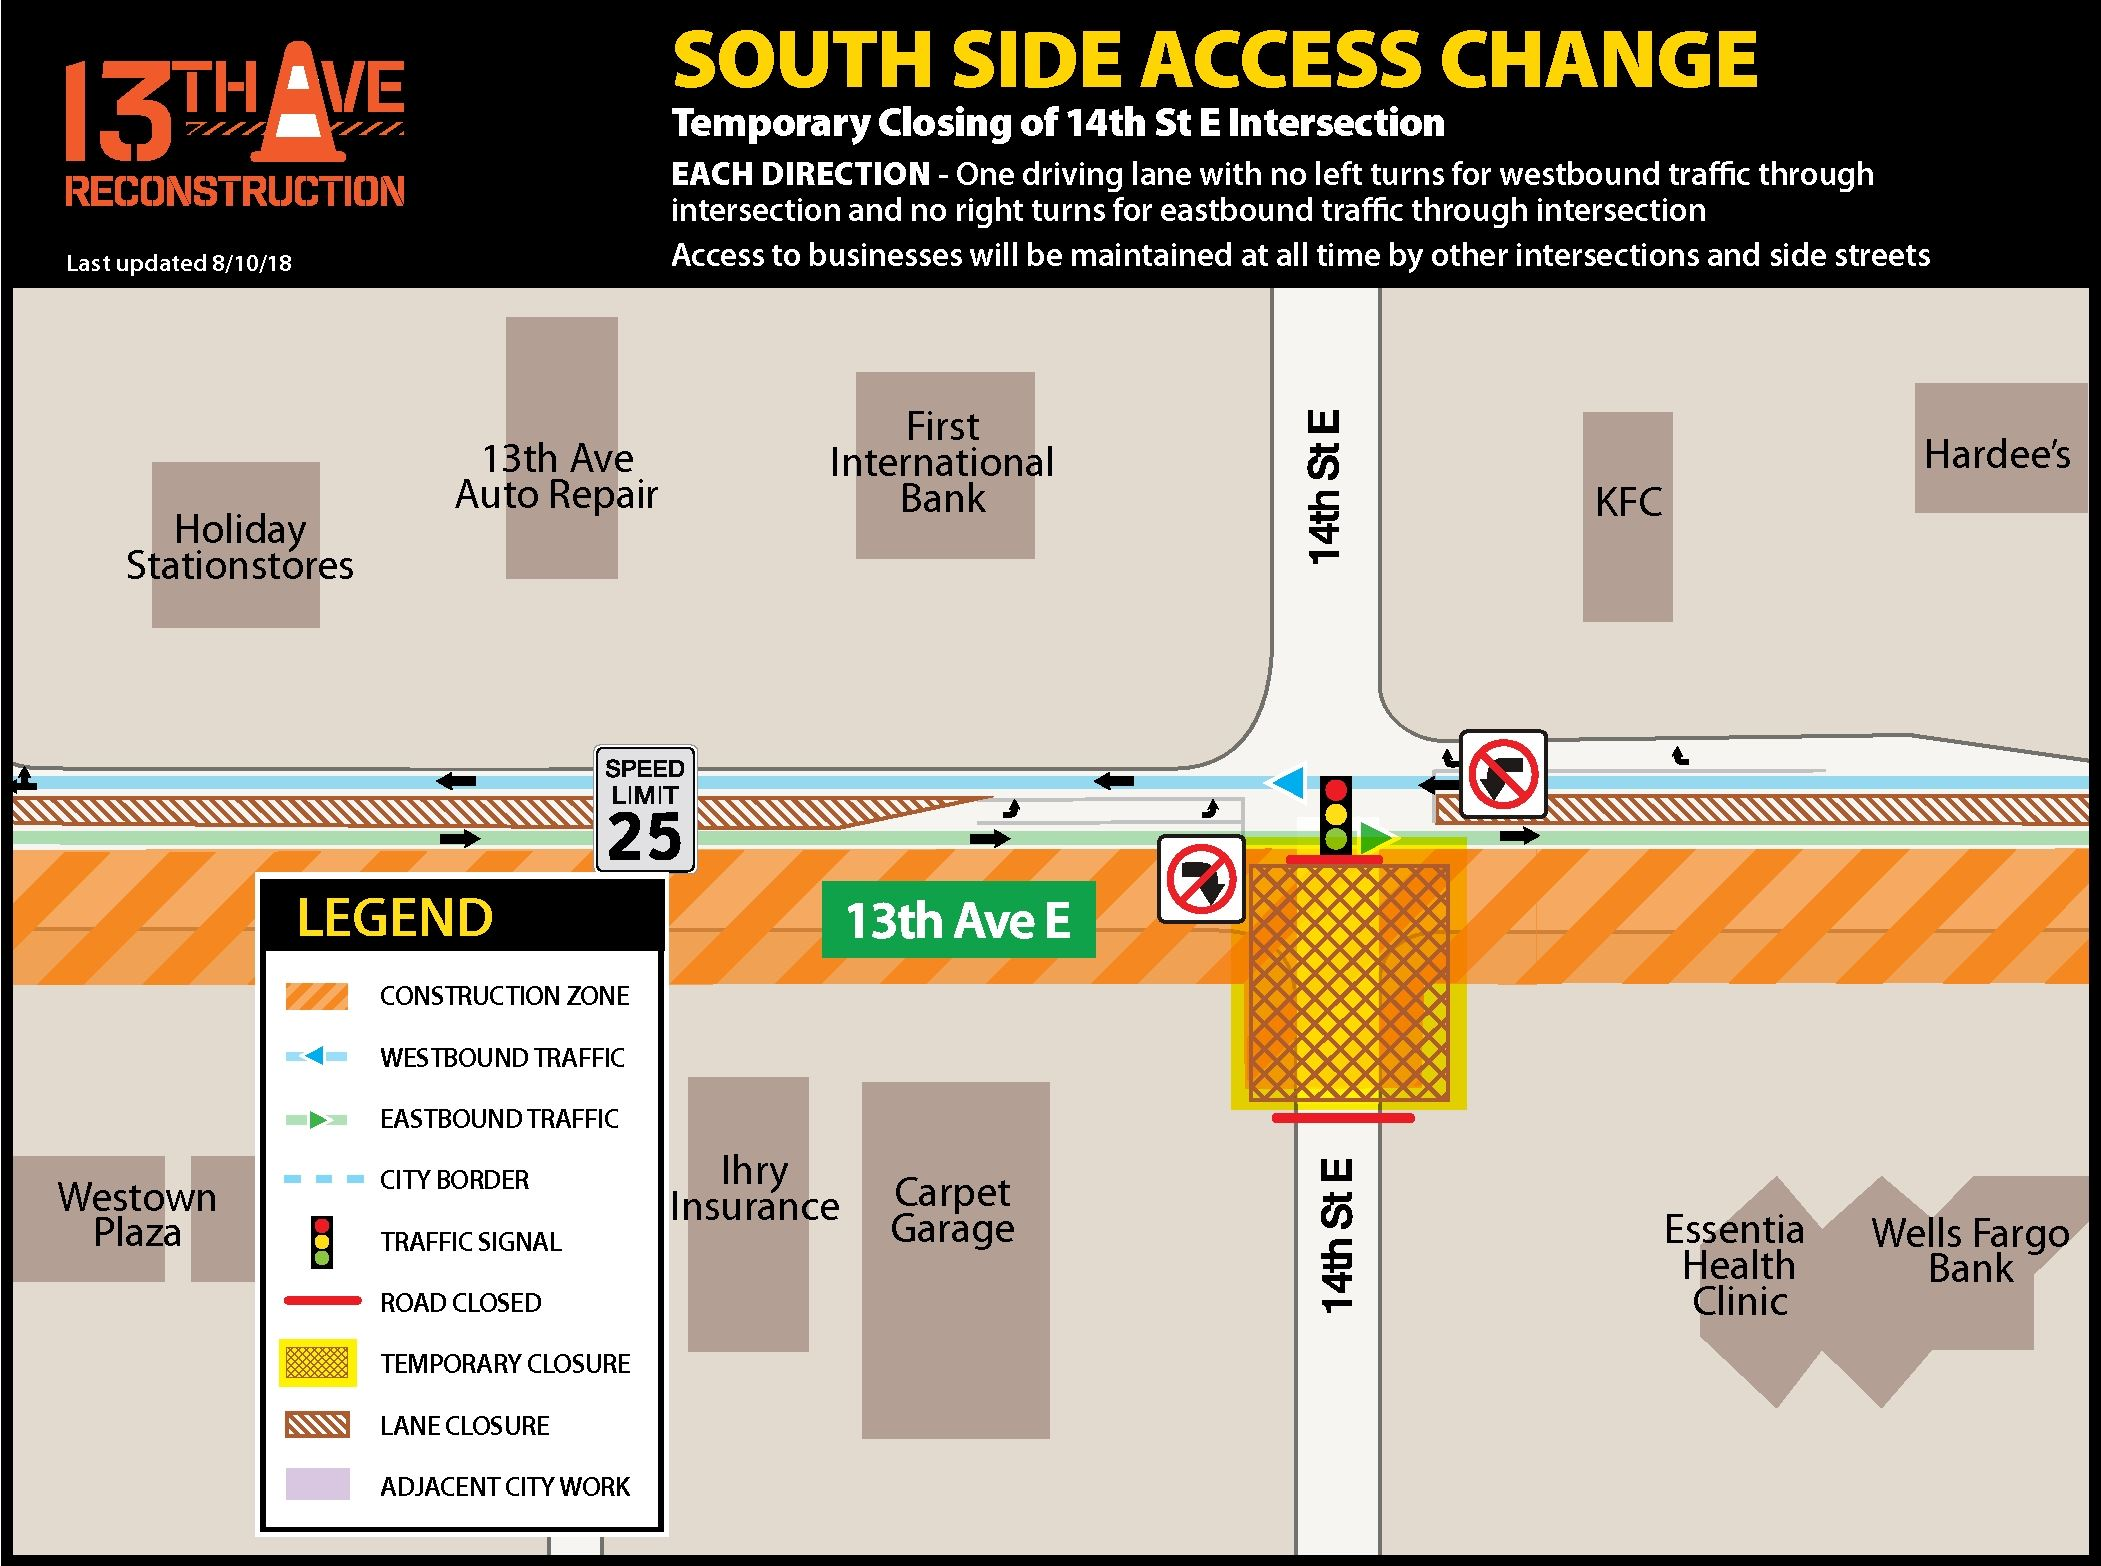 14th Street E. temporary closing traffic impacts